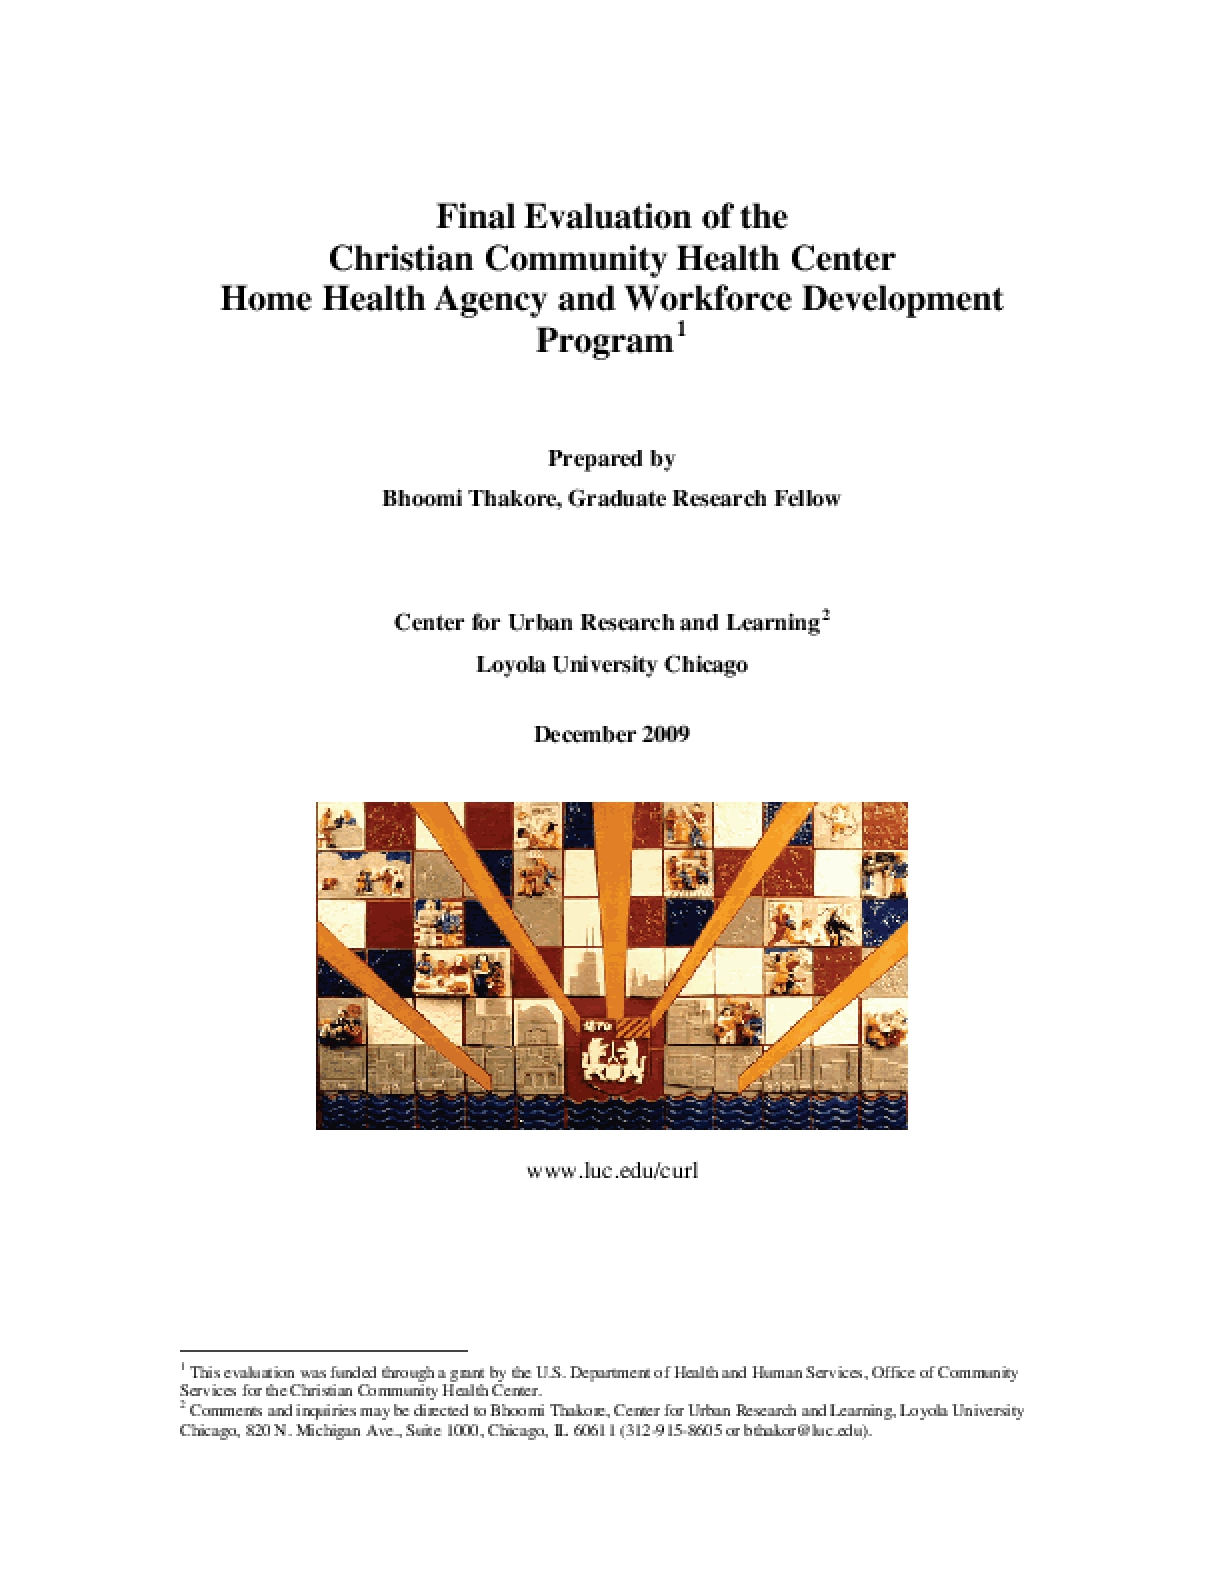 Final Evaluation of the Christian Community Health Center Home Health Agency and Workforce Development Program